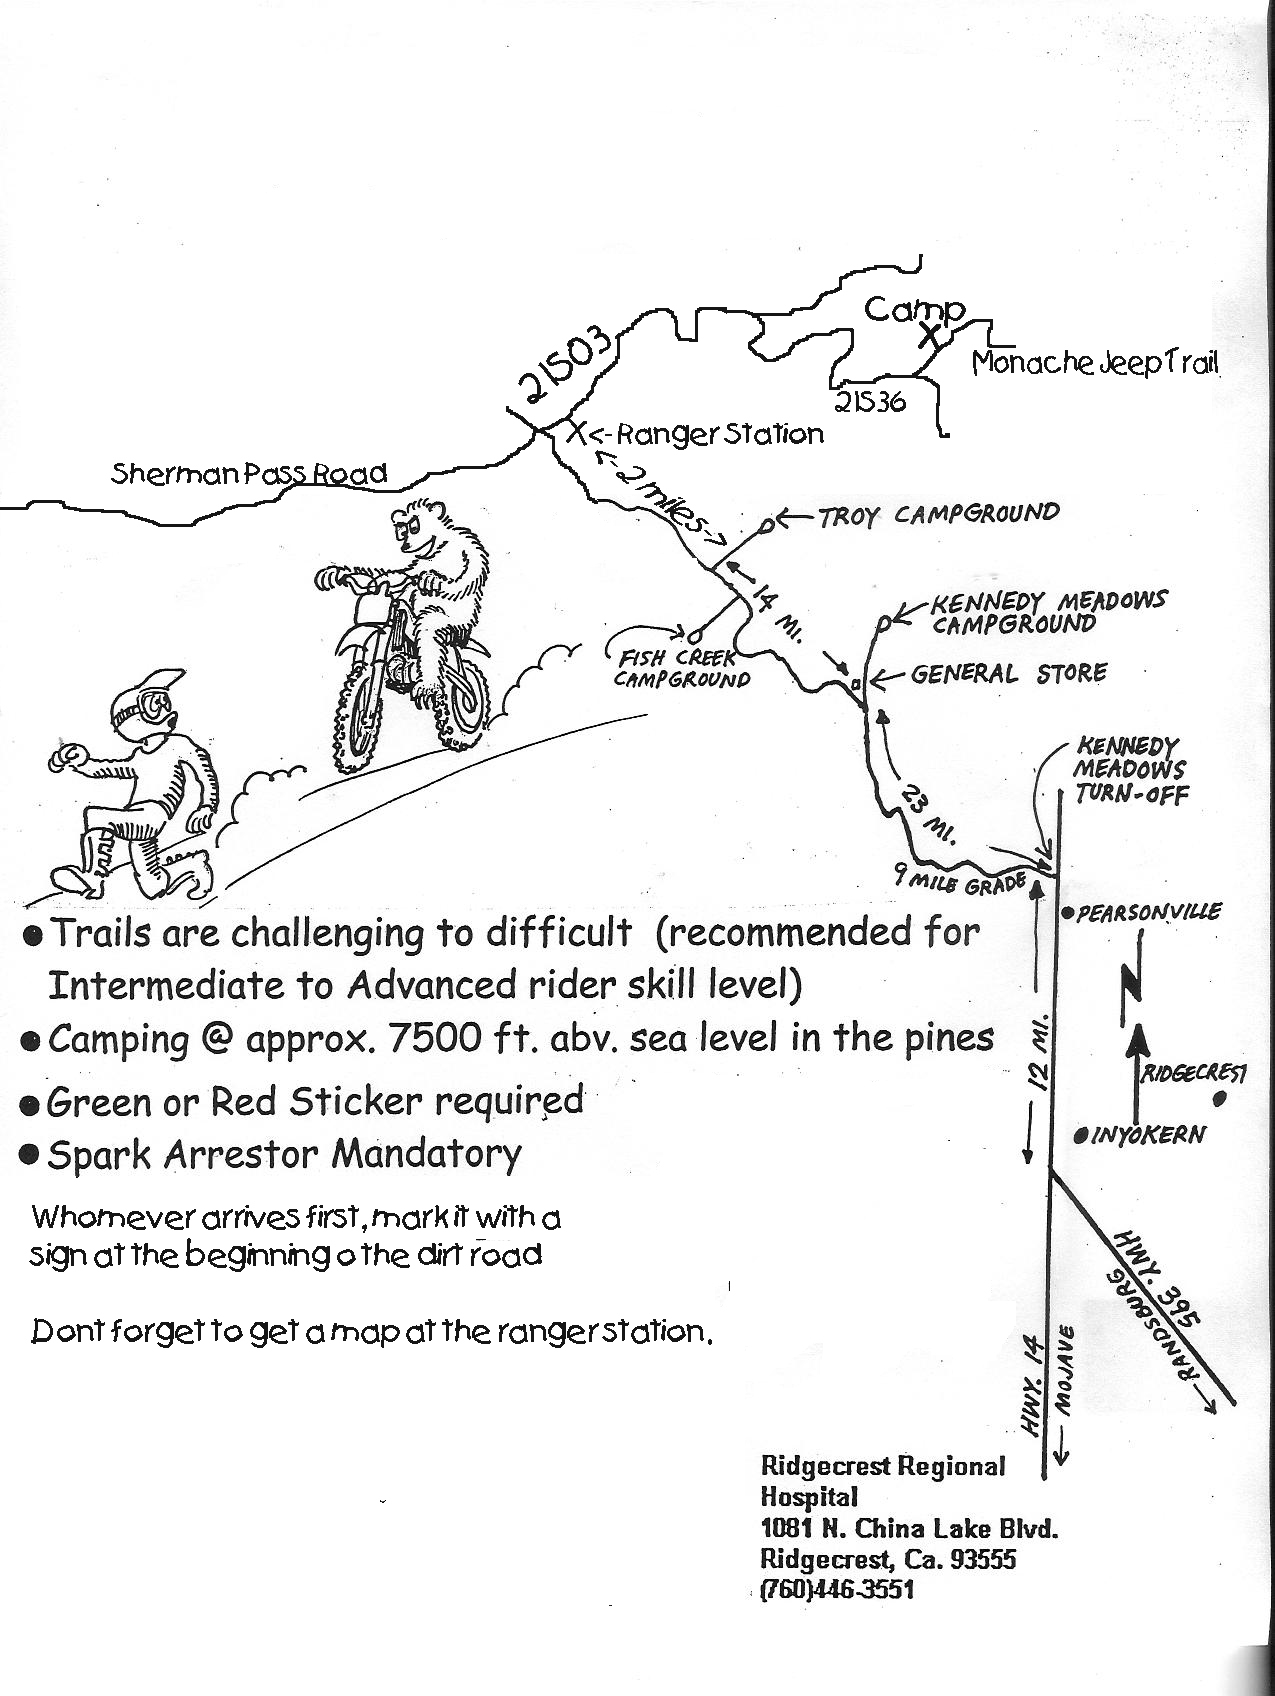 Kennedy Meadows Map